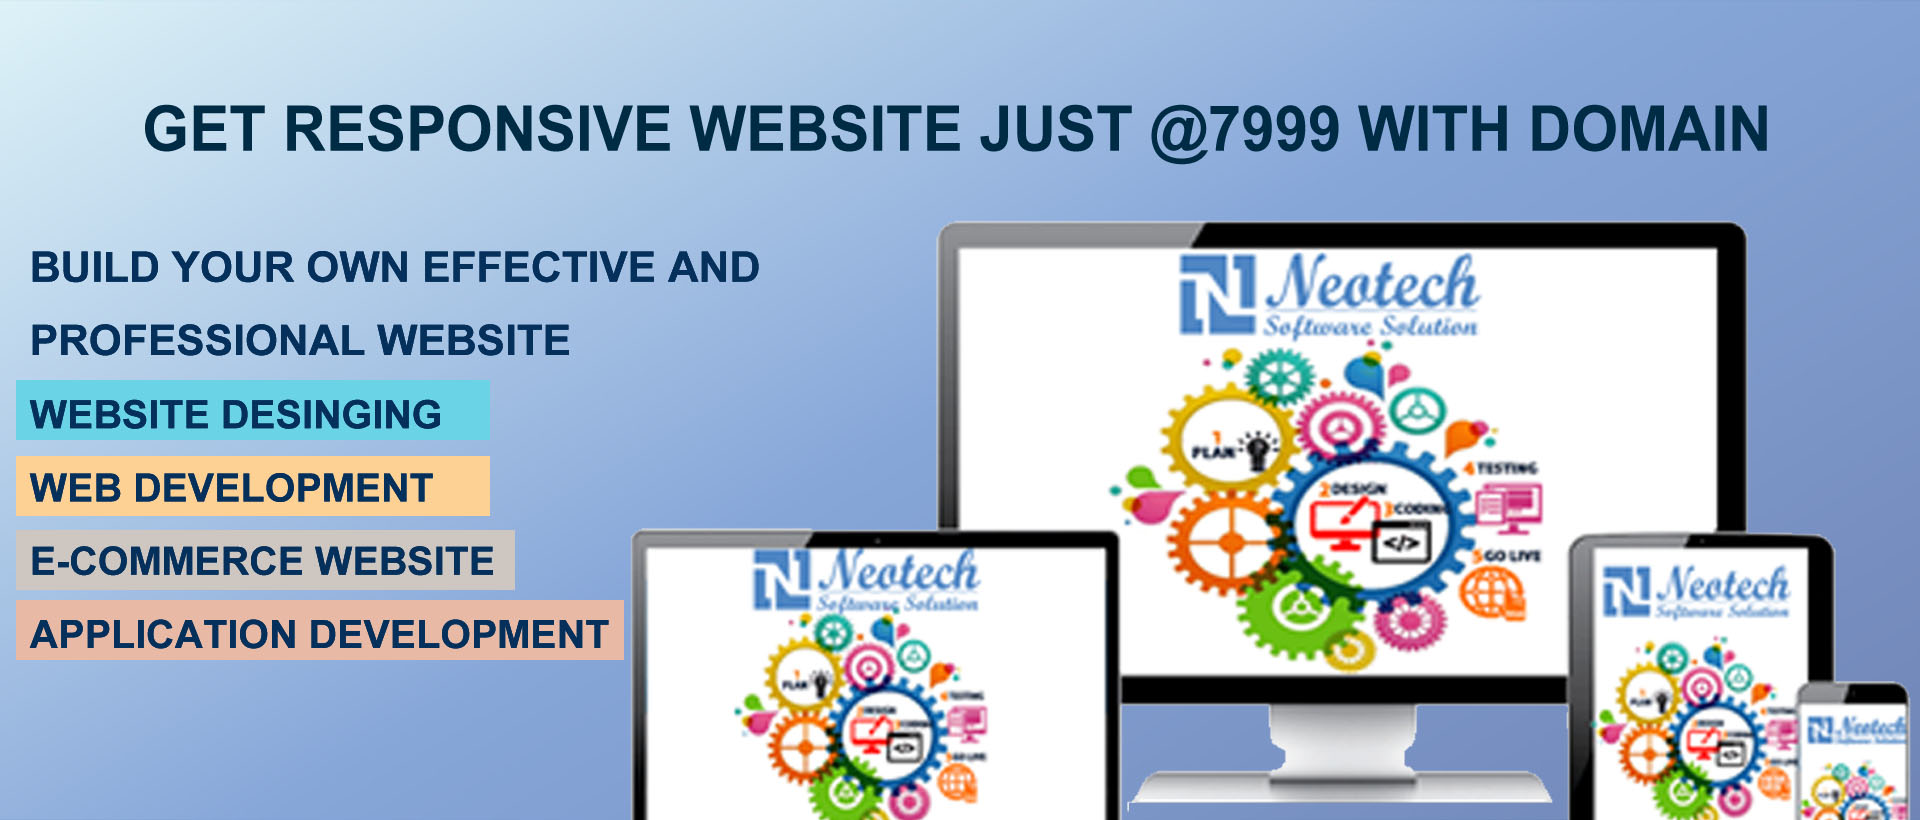 Neotech Software Solution and carporate training, It company